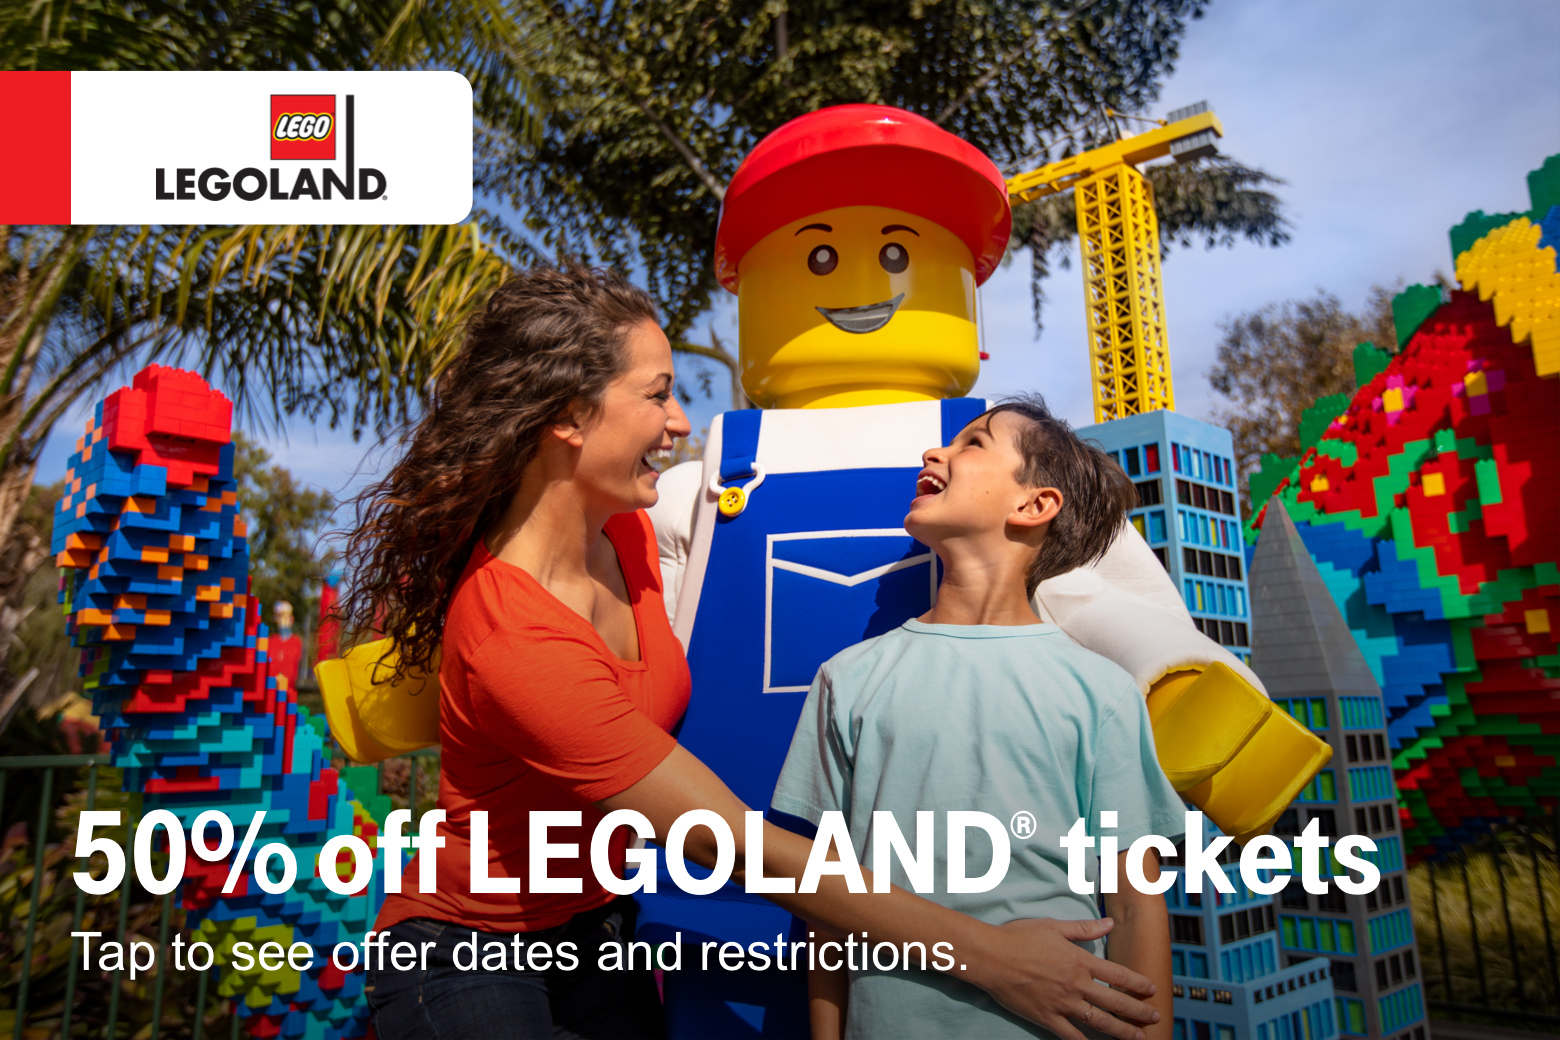 Lego. 50% off Legoland tickets. Tap to see offer dates and restrictions.